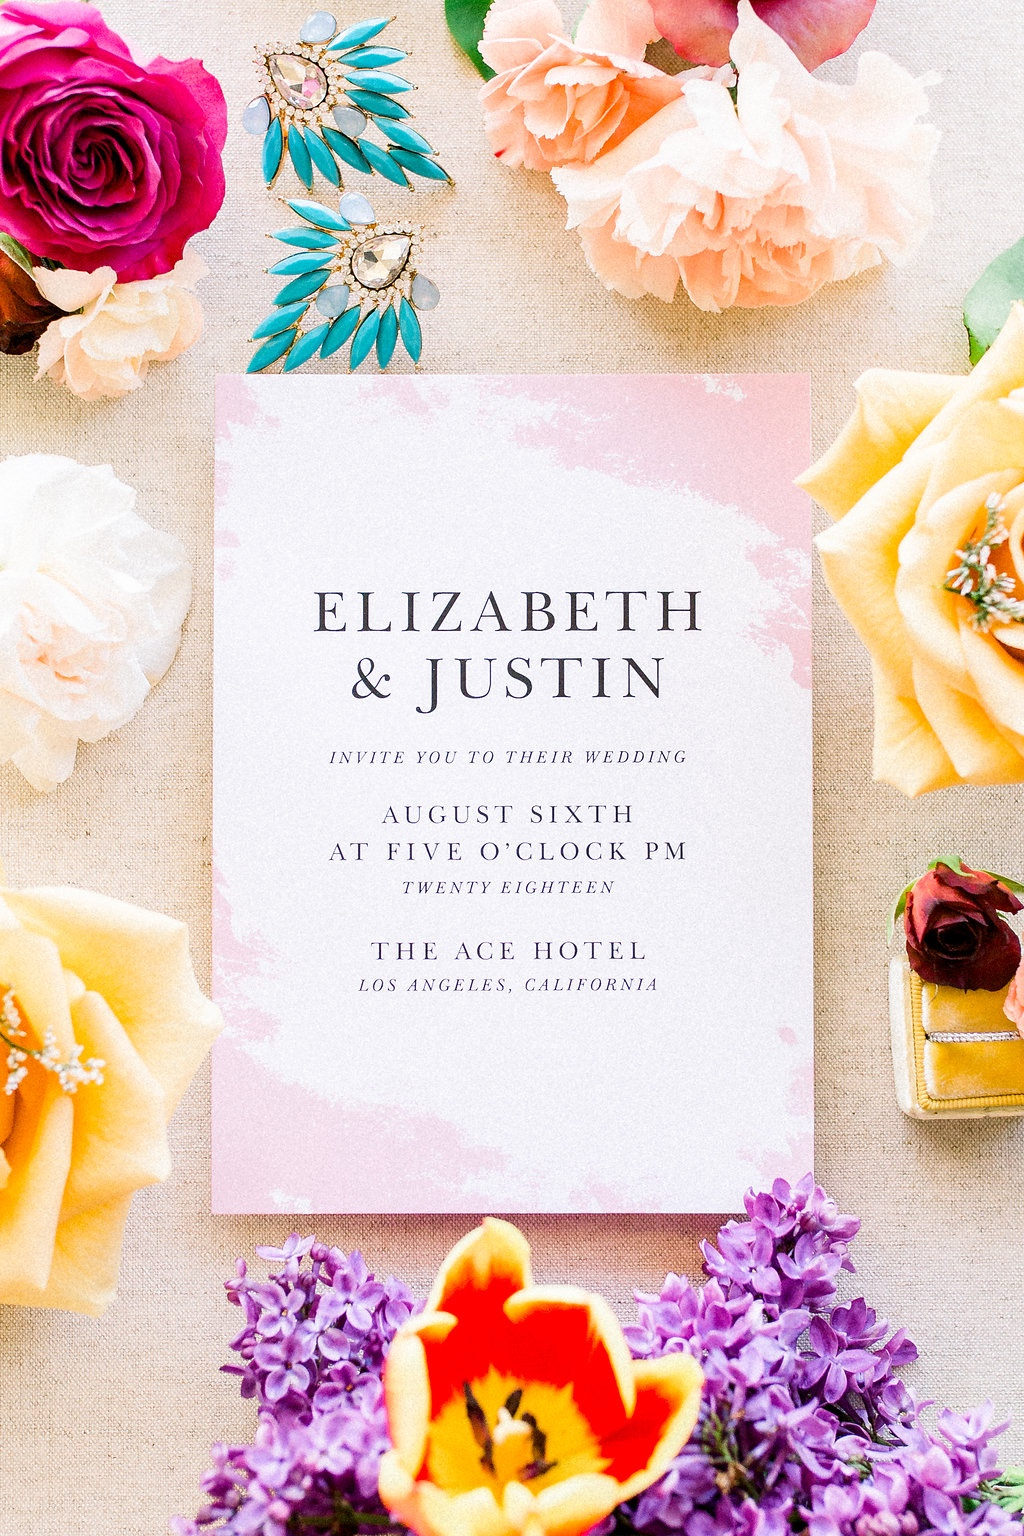 Pretty in pink! Loving this brightly styled wedding invitation for a summery look!